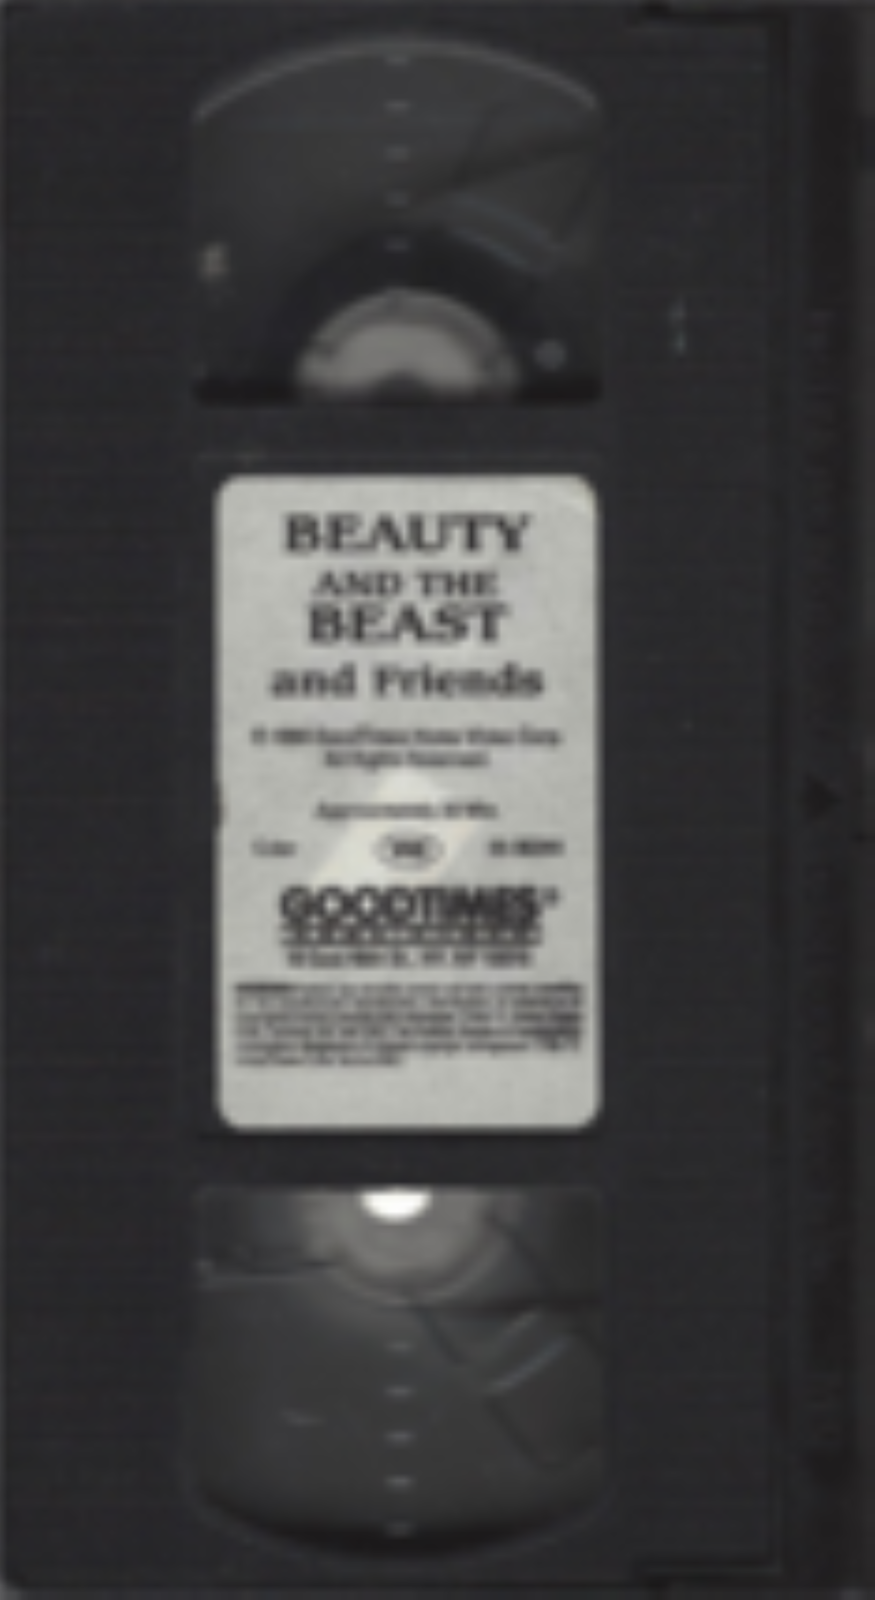 Beauty and the Beast and Friends Vhs